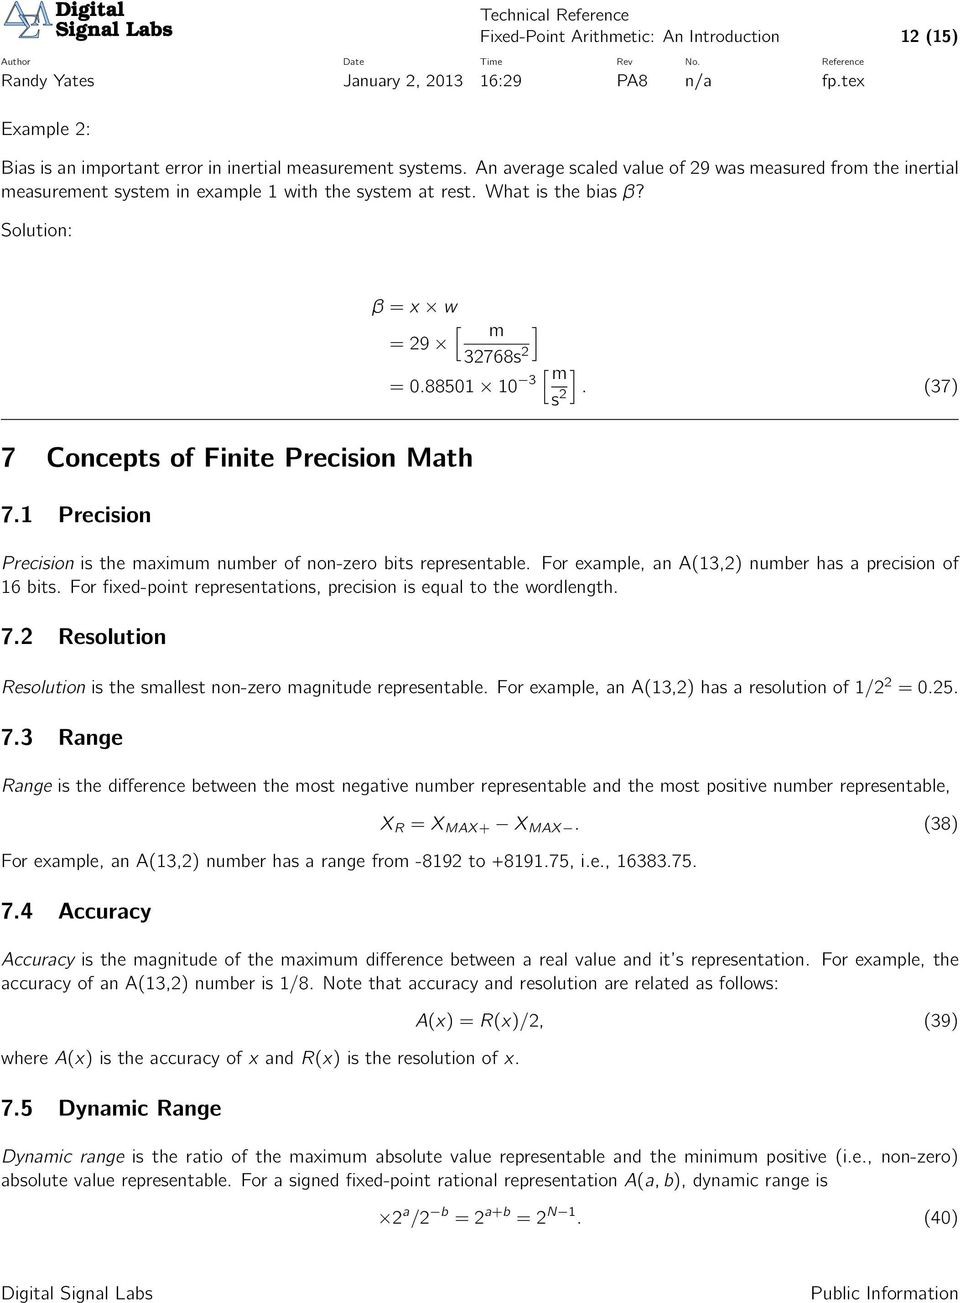 (37) 7 Concepts of Finite Precision Math 7.1 Precision Precision is the maximum number of non-zero bits representable. For example, an A(13,2) number has a precision of 16 bits.